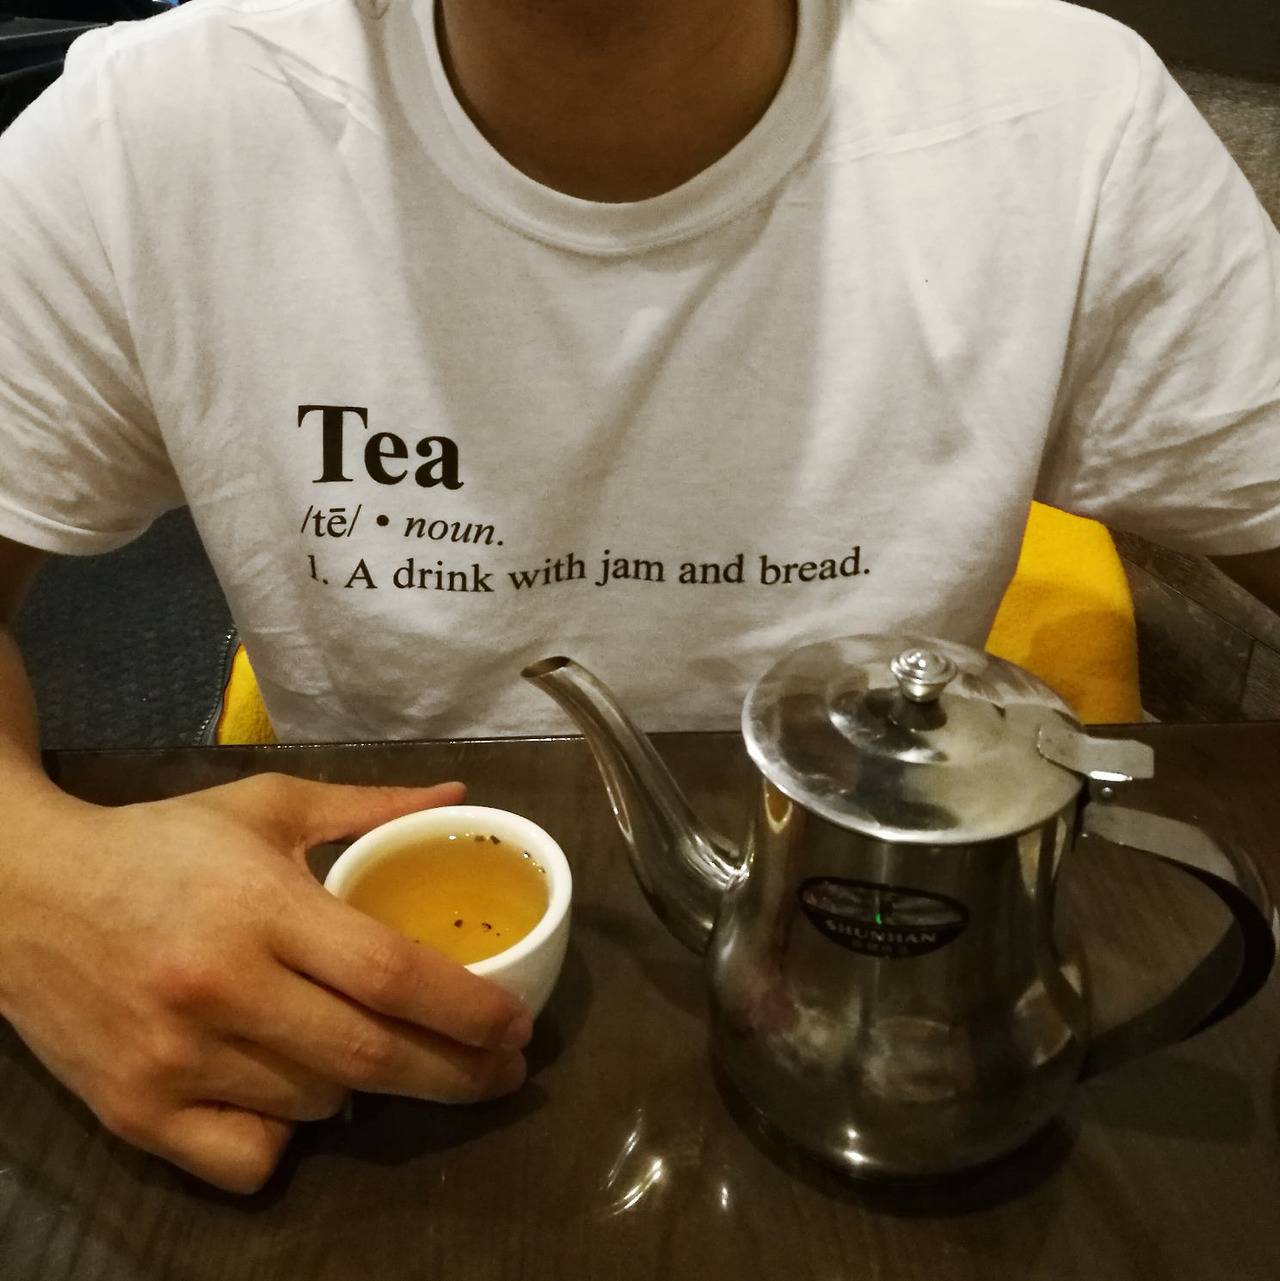 Aircodeinternational:The Very Definition Of A Awesome Tea Shirt.